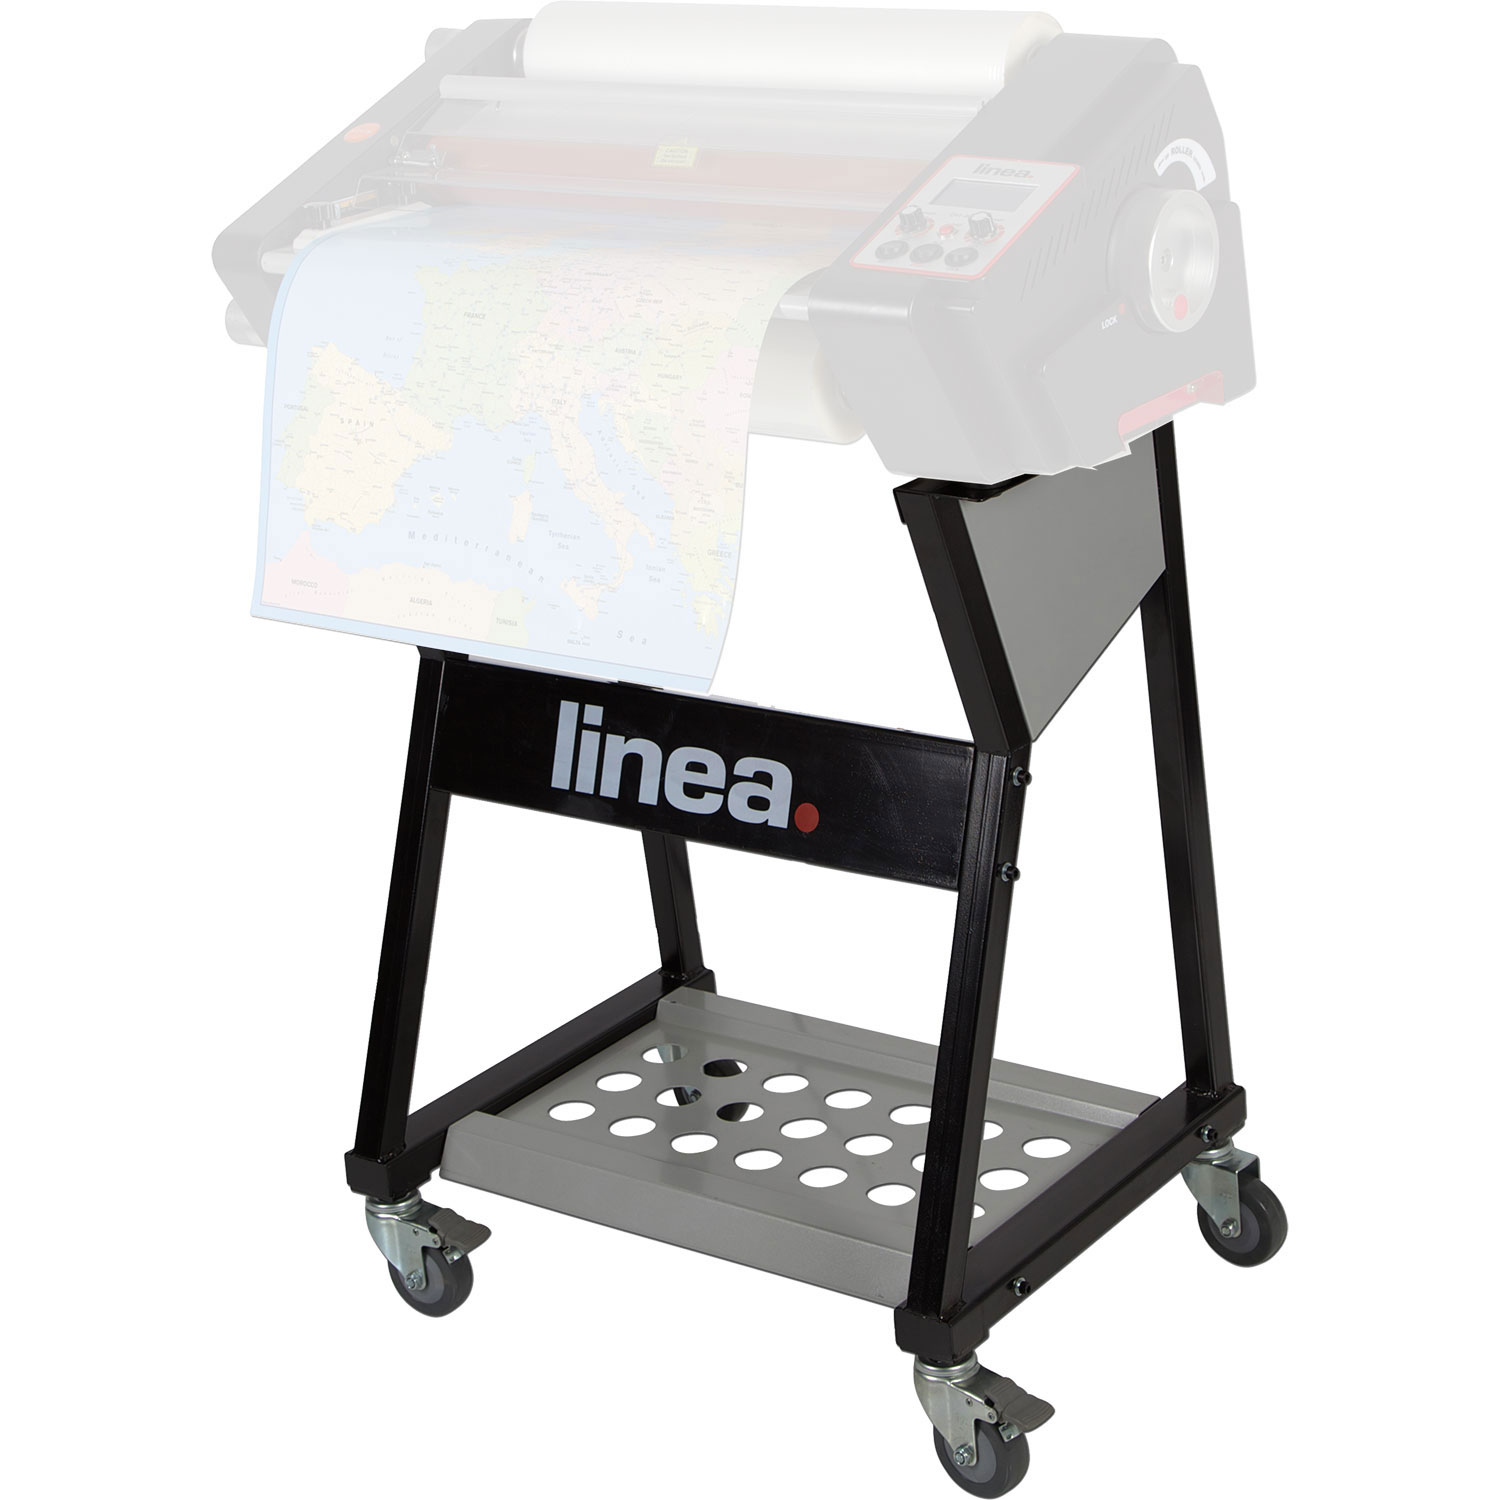 Floor-Stand For Linea DH460 Roll-fed Laminator